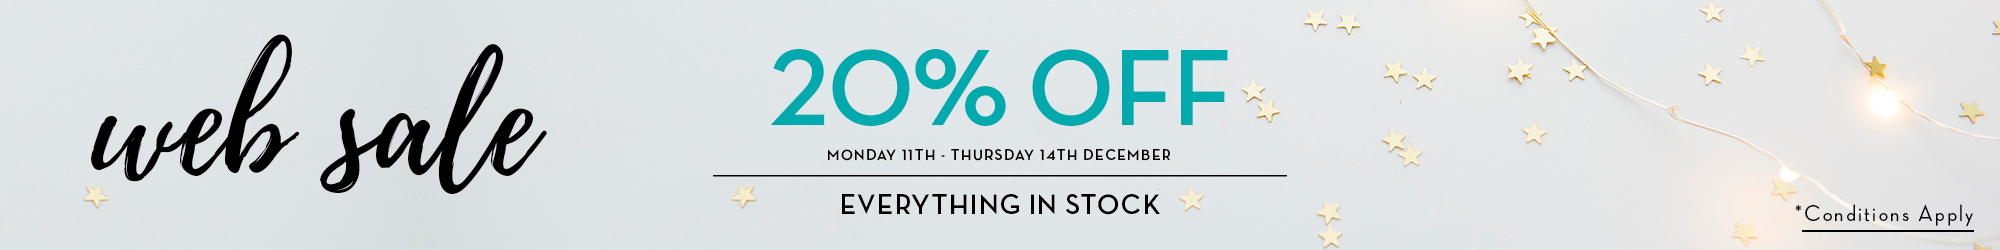 20% Off Web Sale Mon 11th - Thurs 14th Dec